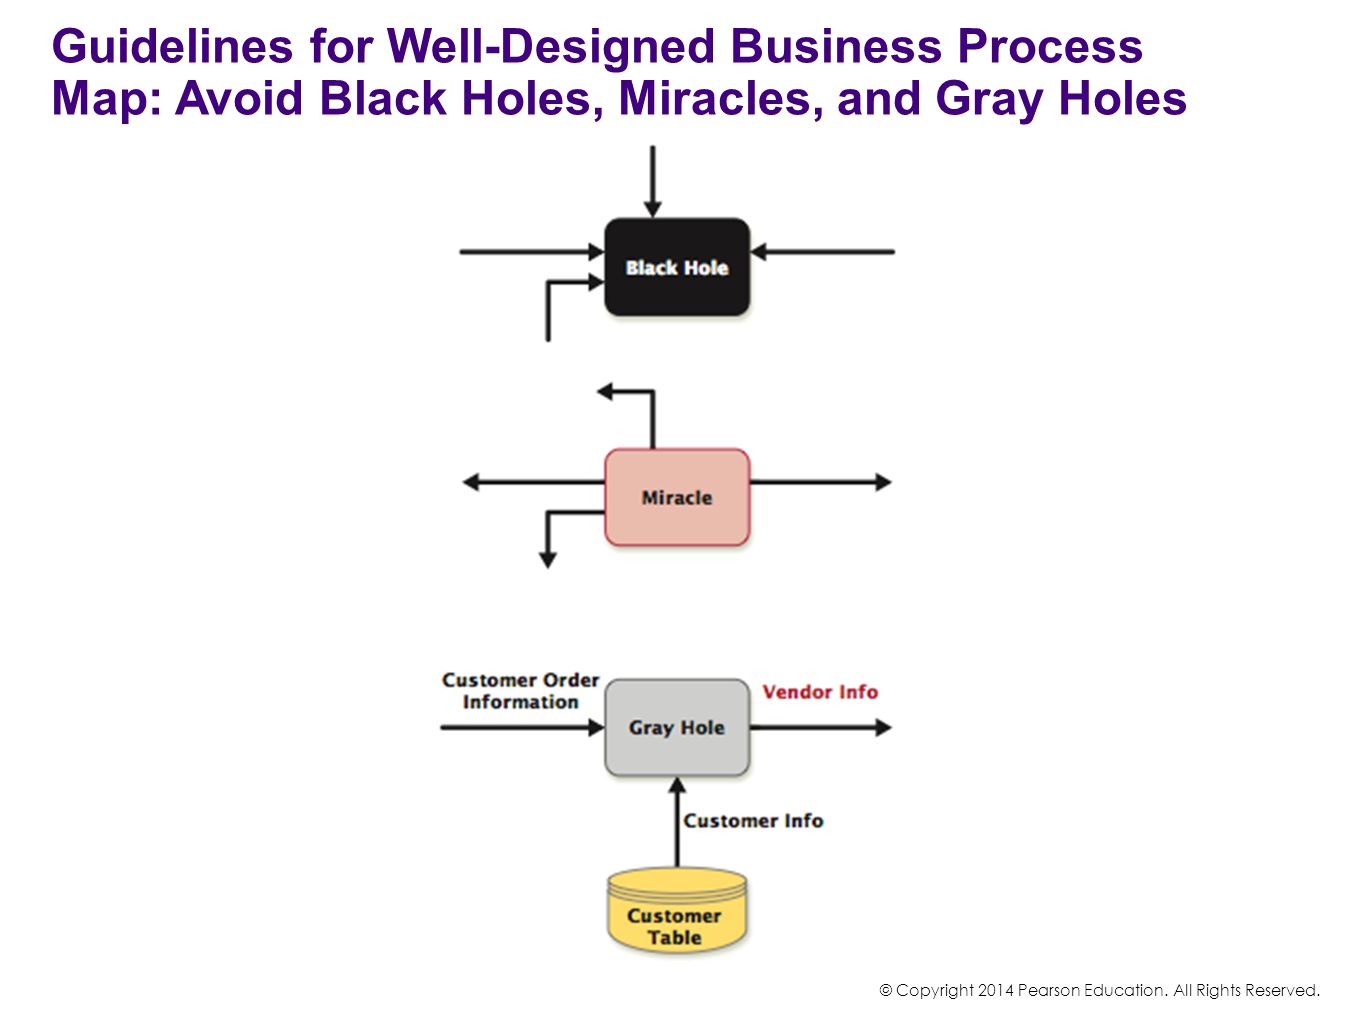 Guidelines for Well-Designed Business Process Map: Avoid Black Holes, Miracles, and Gray Holes